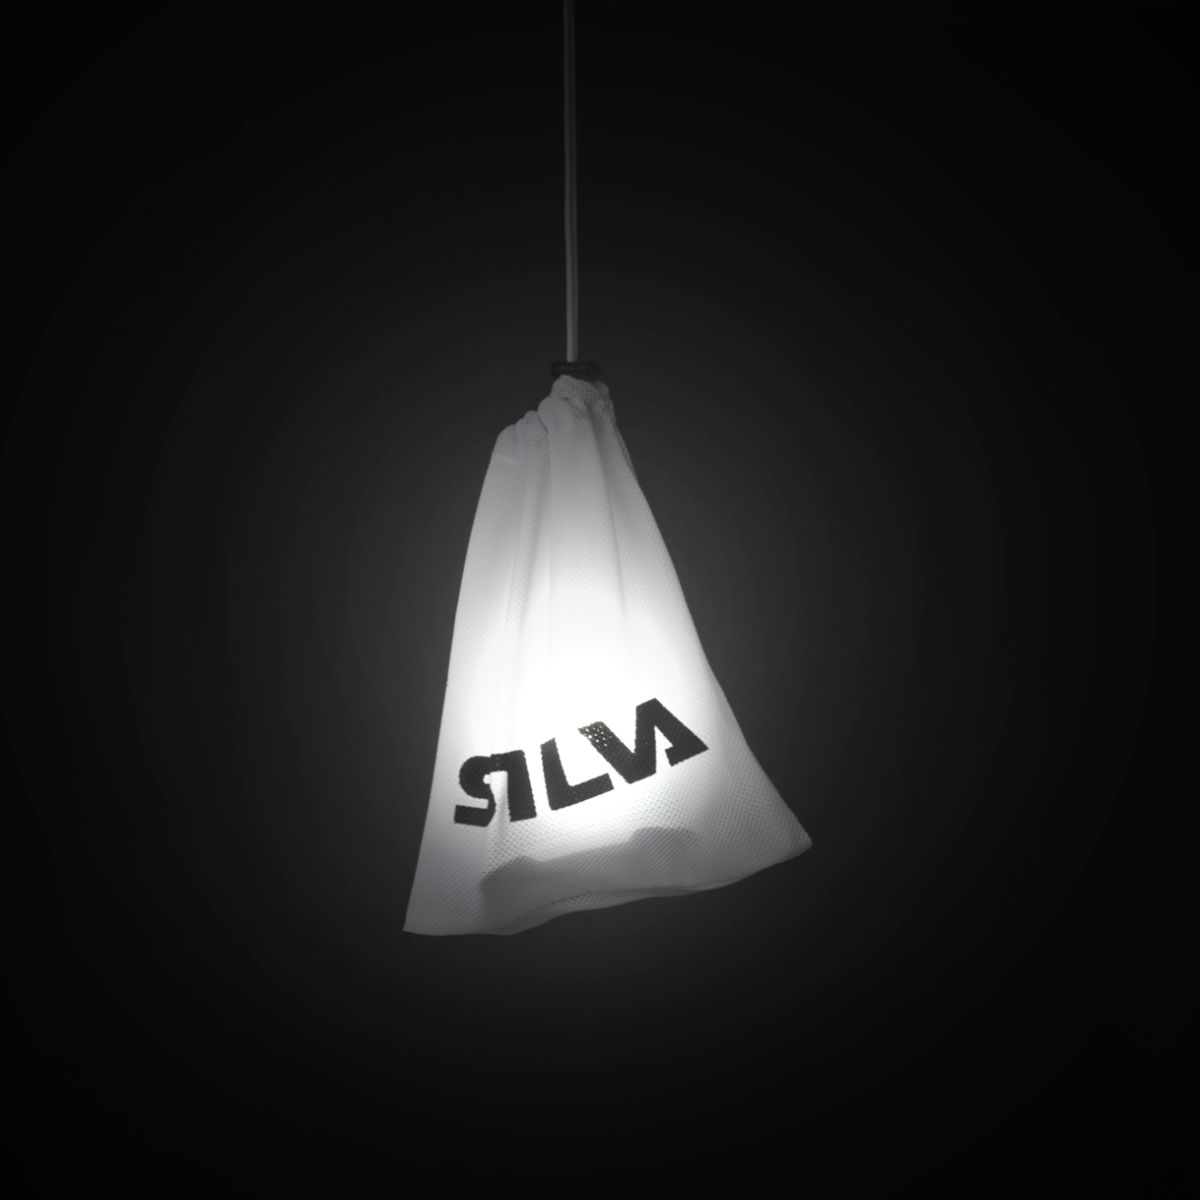 Silva Explore 4RC Headtorch bag light inside